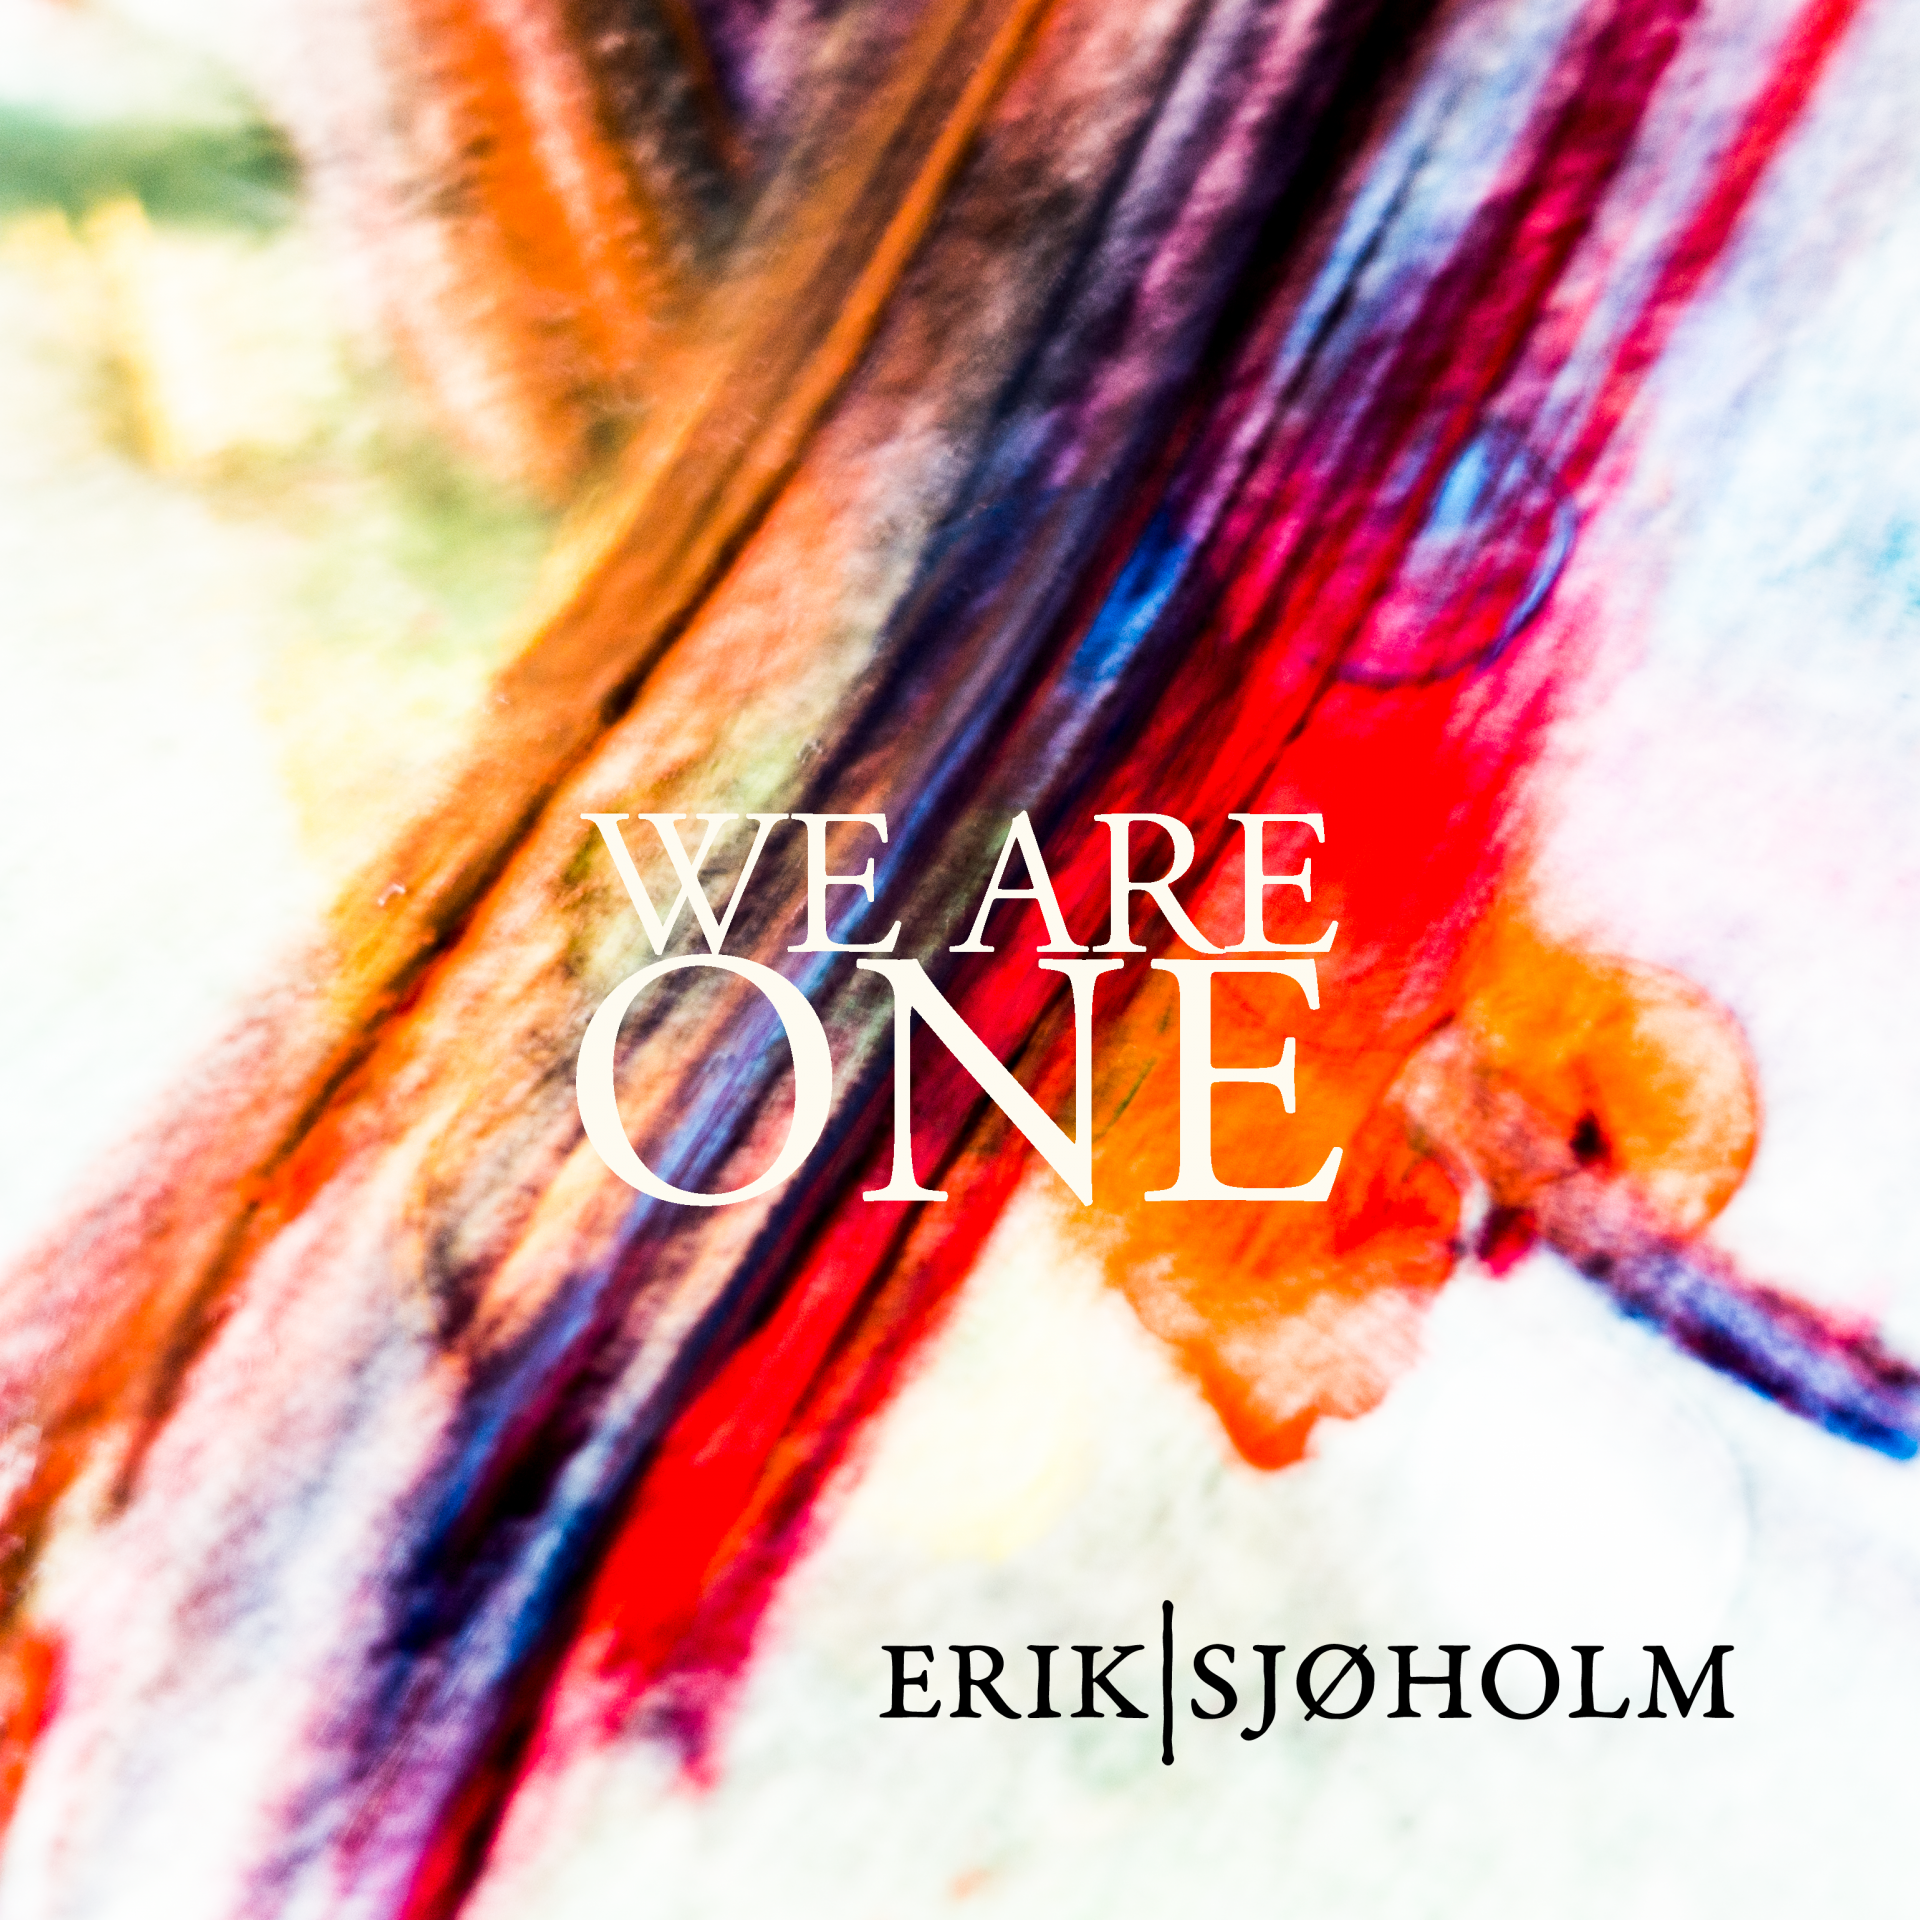 We are one, cover art